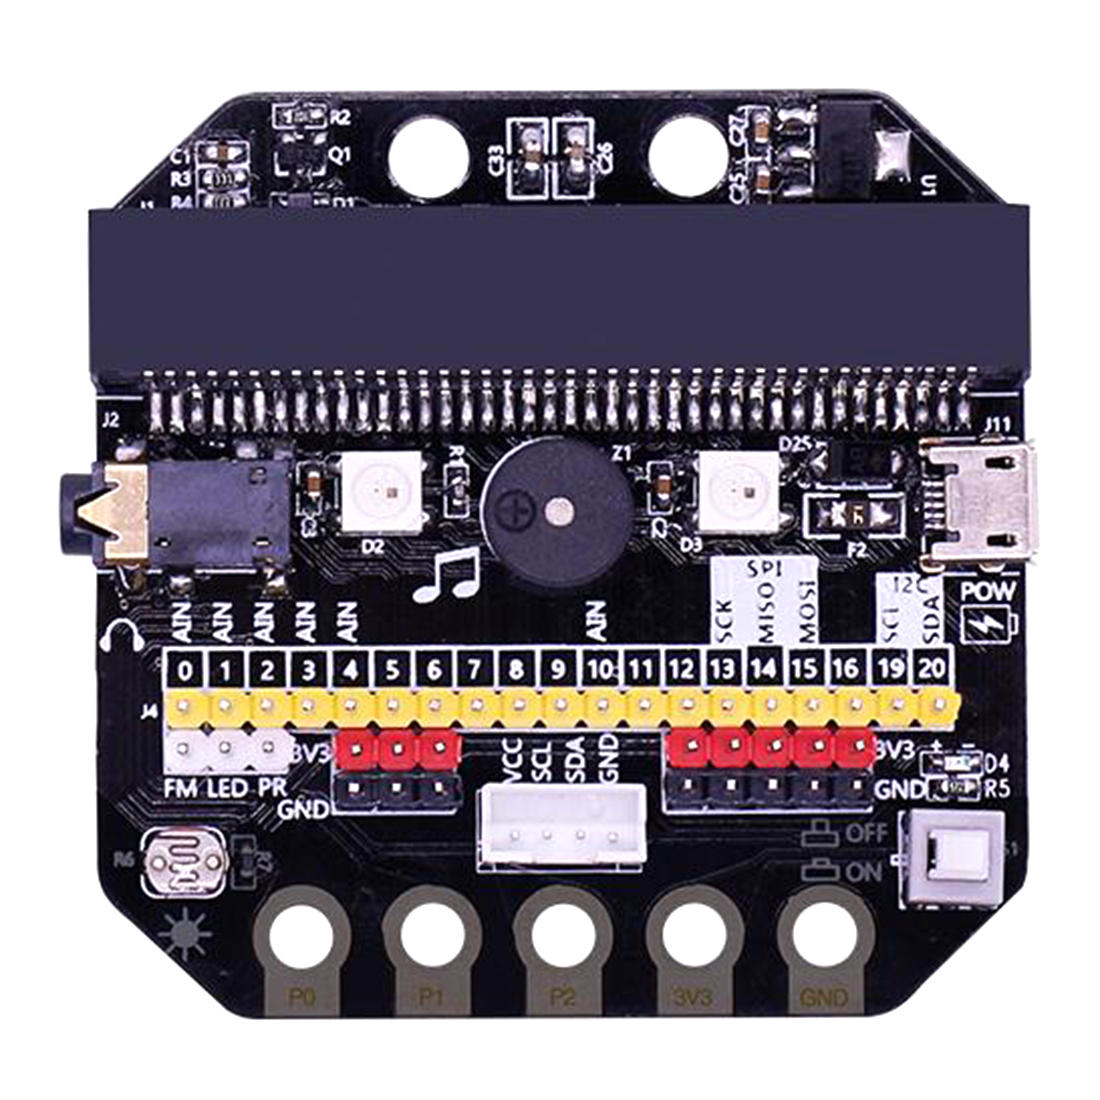 2019 Hot Sale Basic:Bit IO Expansion Board Horizontal Type Pinboard Microbit Python Development Board For Micro:Bit Children Toy